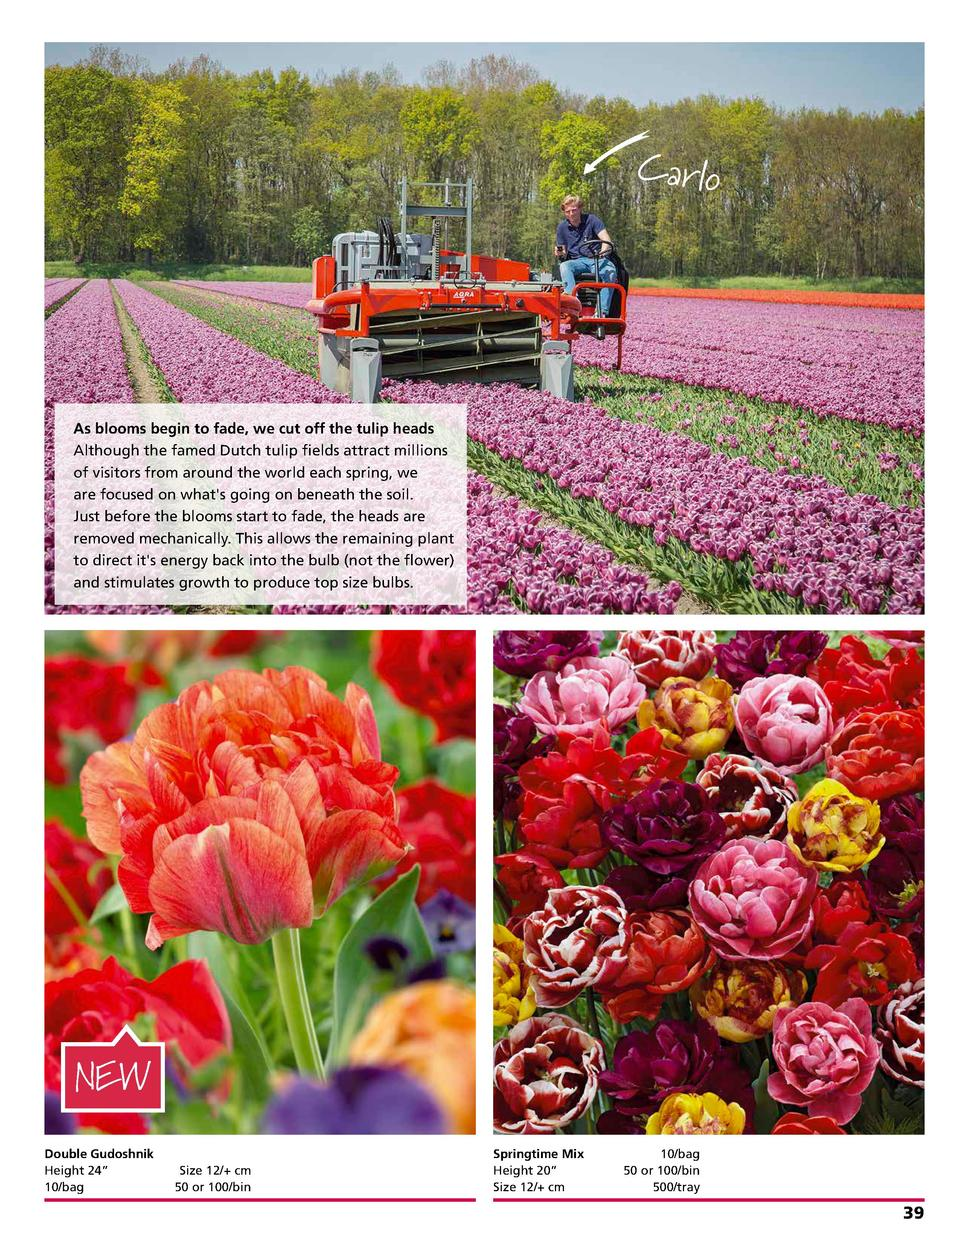 Ca rlo  As blooms begin to fade, we cut off the tulip heads Although the famed Dutch tulip fields attract millions of visi...